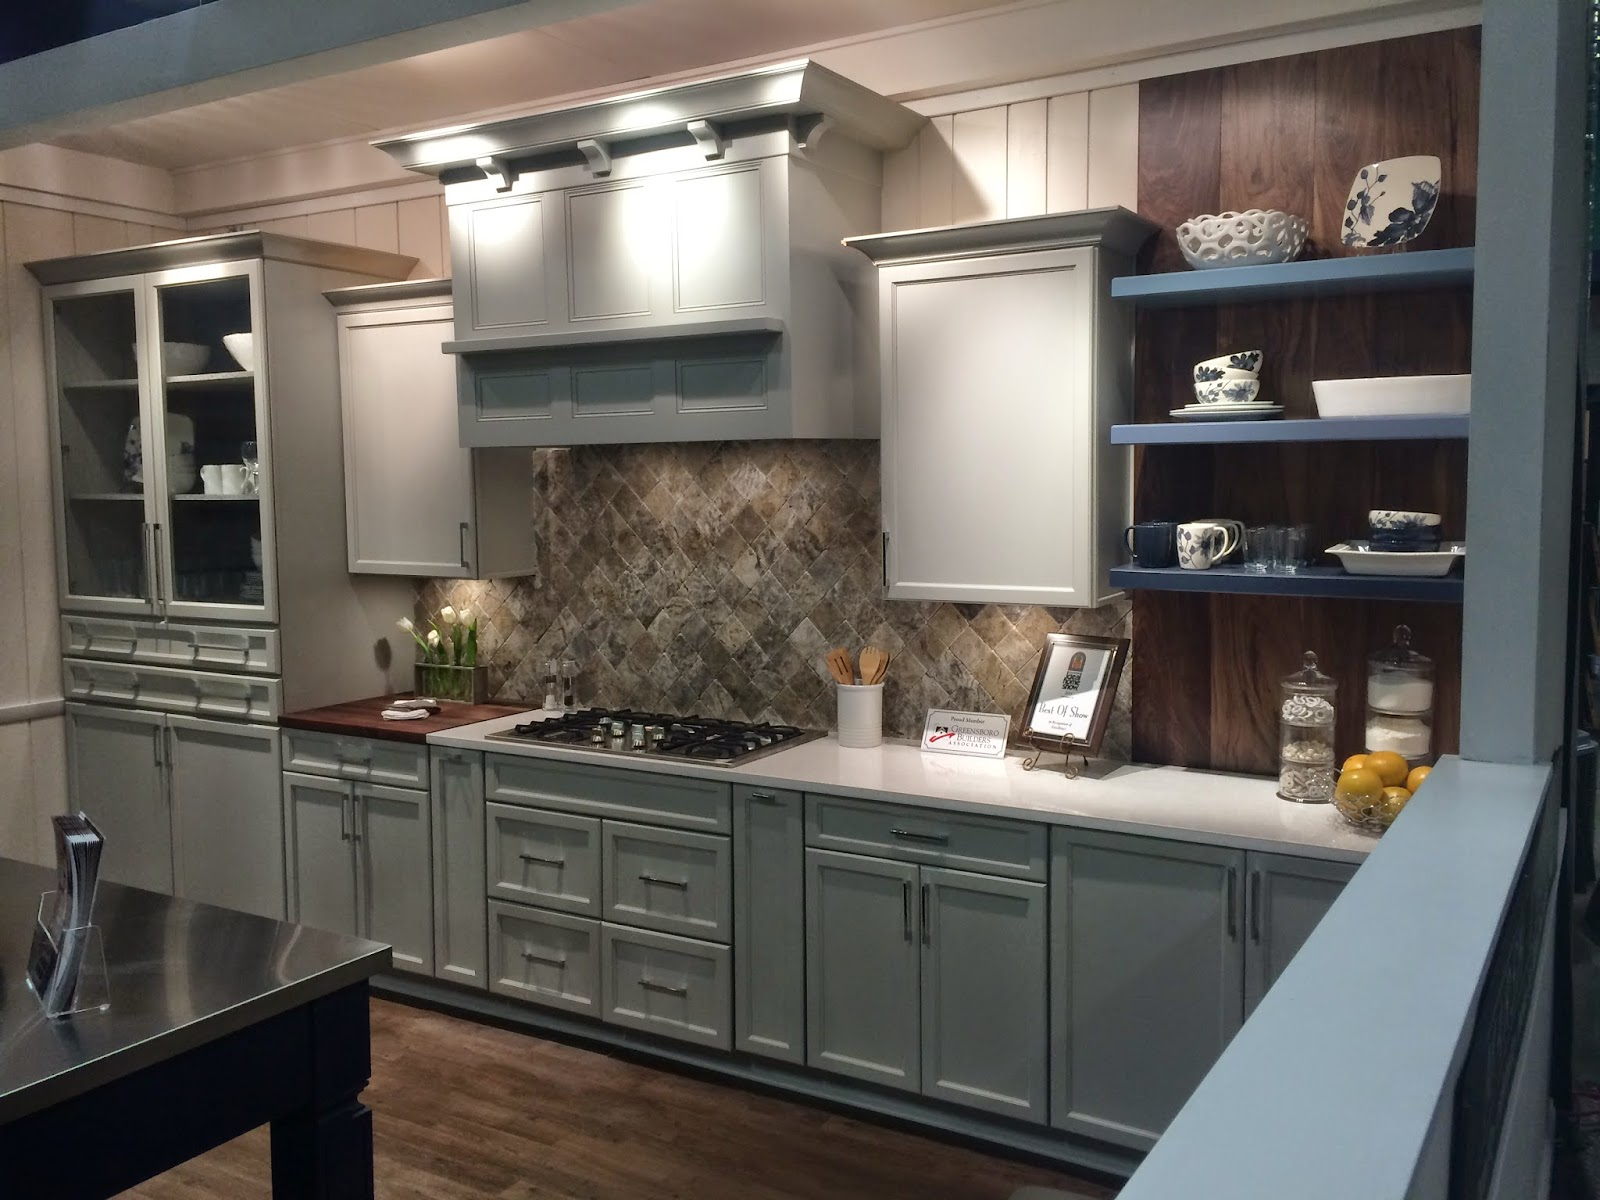 Marsh Kitchens Wins Best In Show Award At Southern Ideal Home